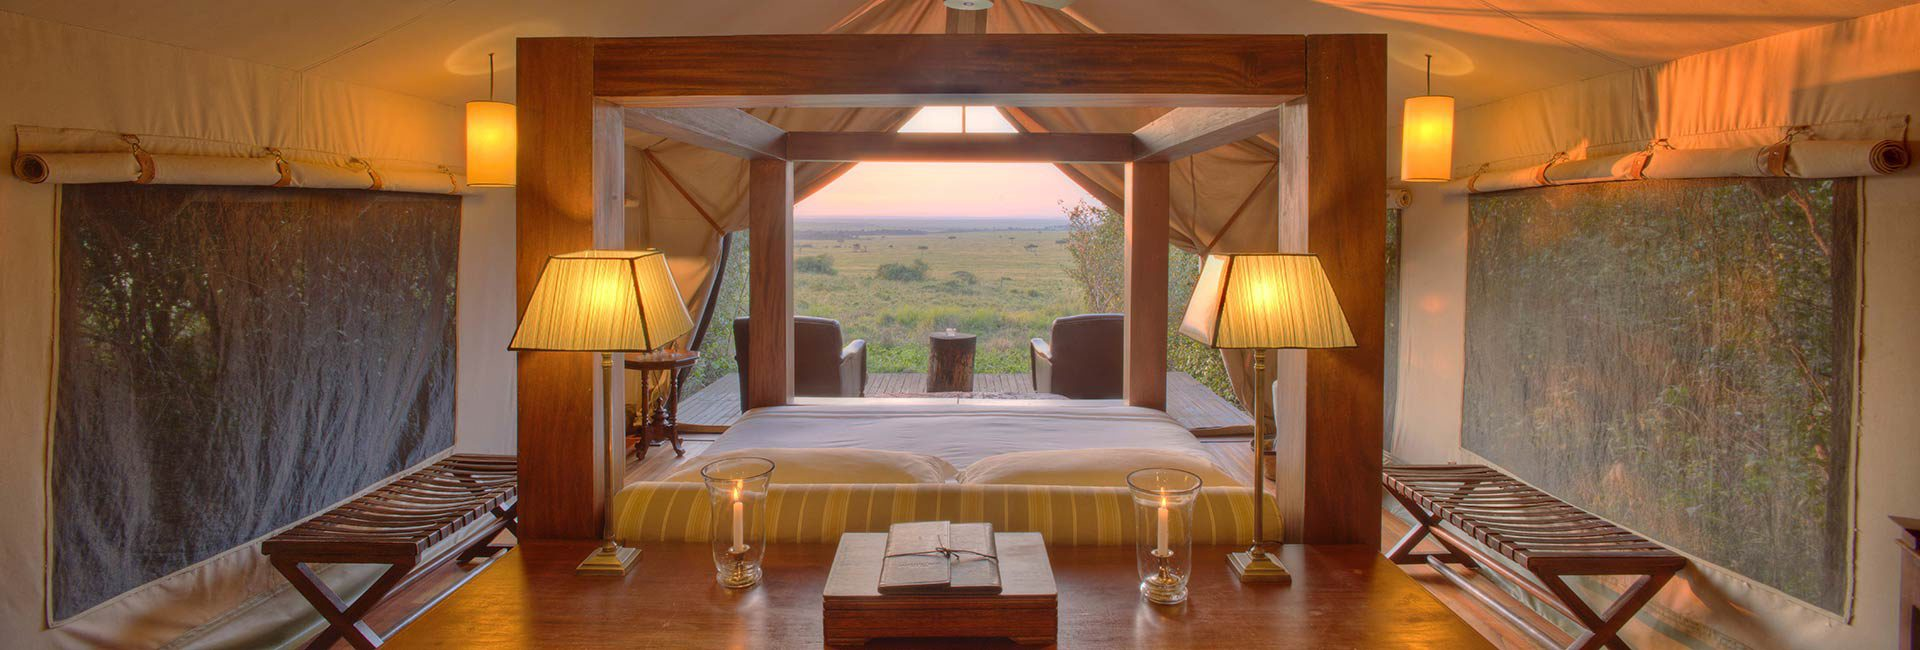 The pinnacle of East Africa hospitality on the edge of the great Mara expanse